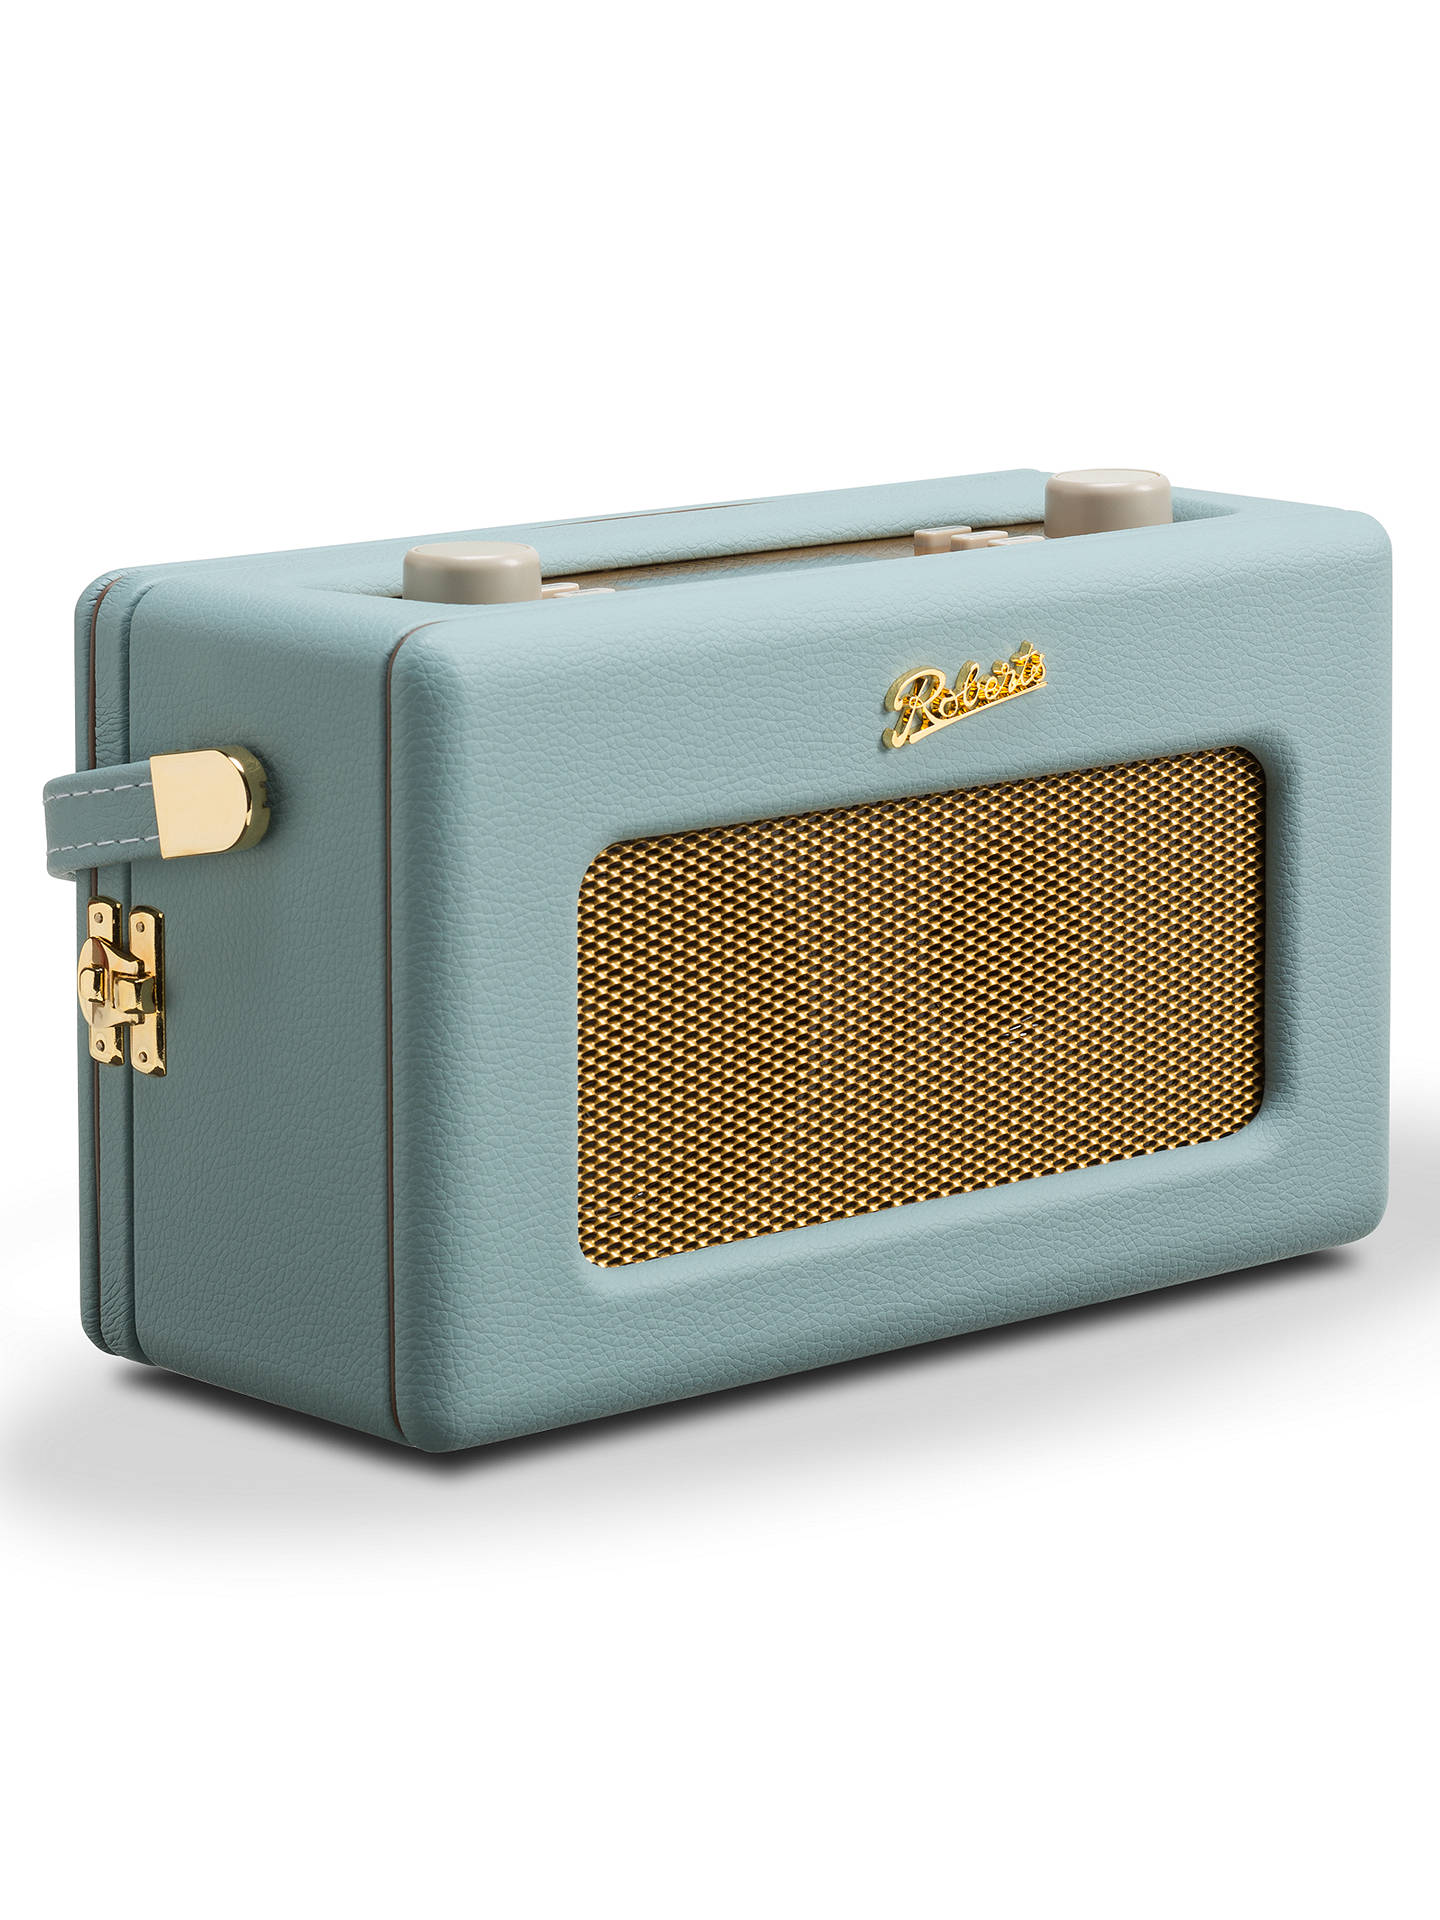 BuyROBERTS Revival iStream 2 Smart Radio With DAB+/FM Internet Radio, Duck Egg Online at johnlewis.com